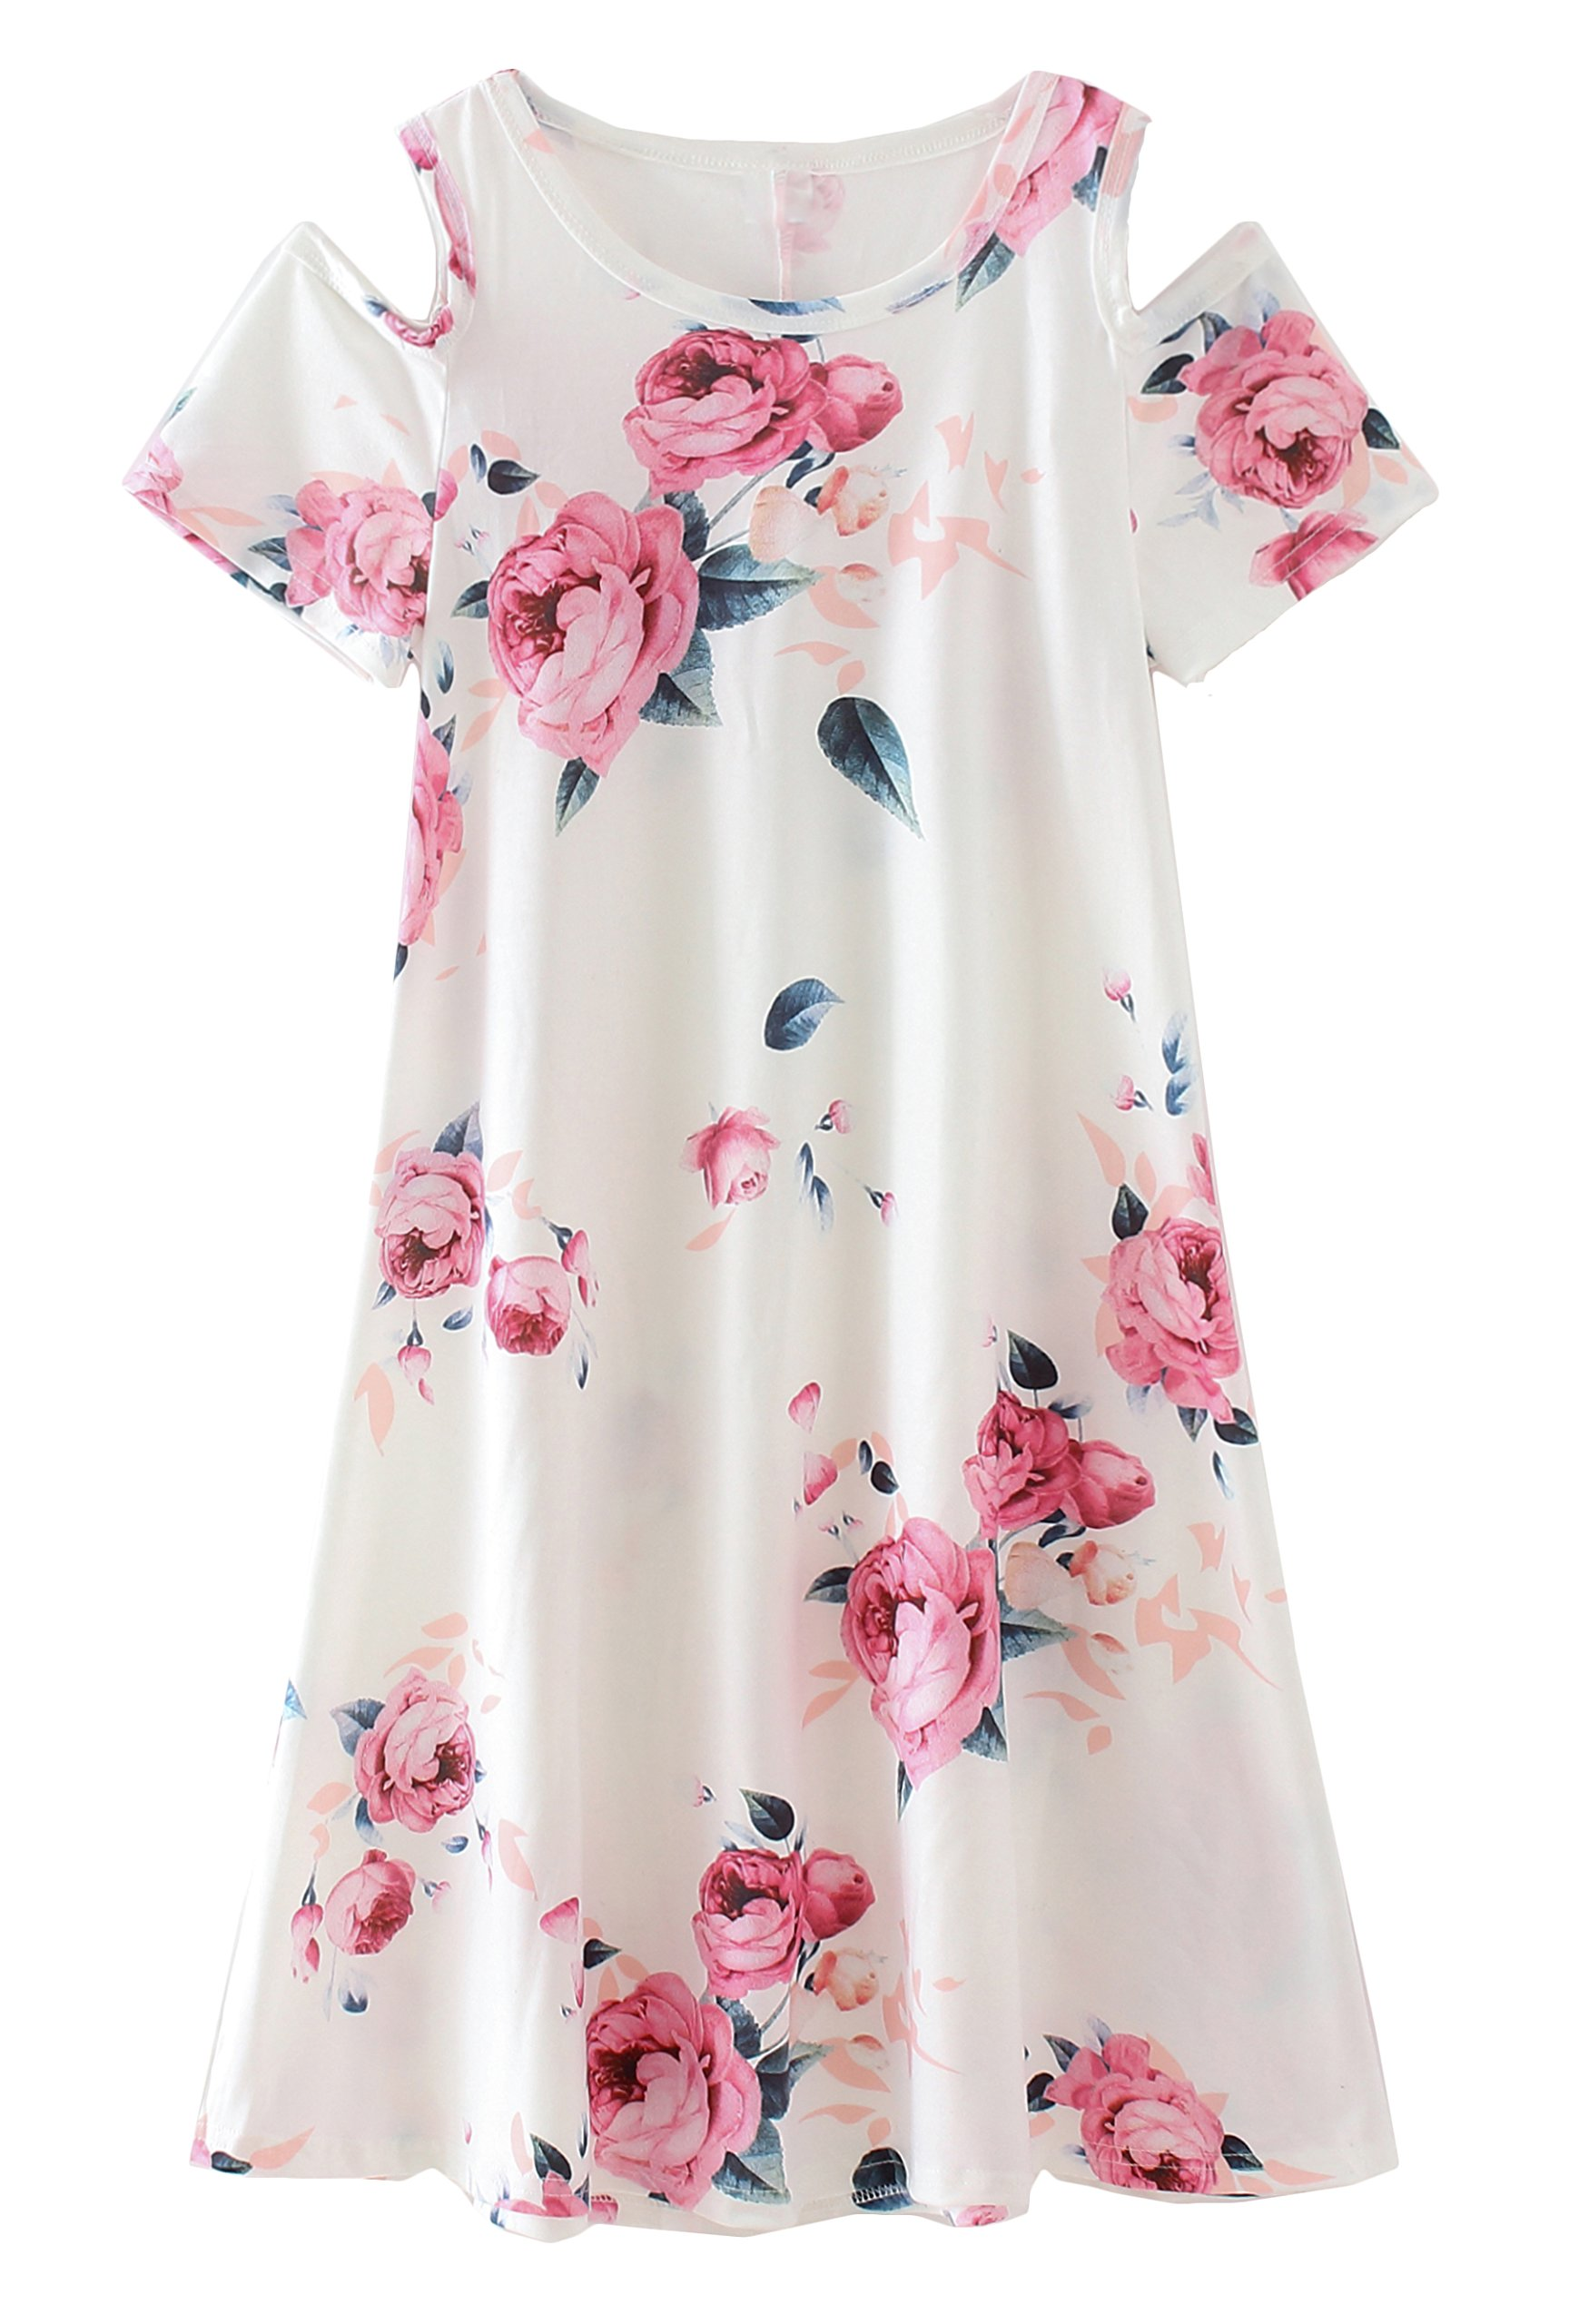 COONITA Girl's Kids Cute Cold Shoulder Floral Print A-Line Loose Casual Midi Tank Dress,Size 12,White